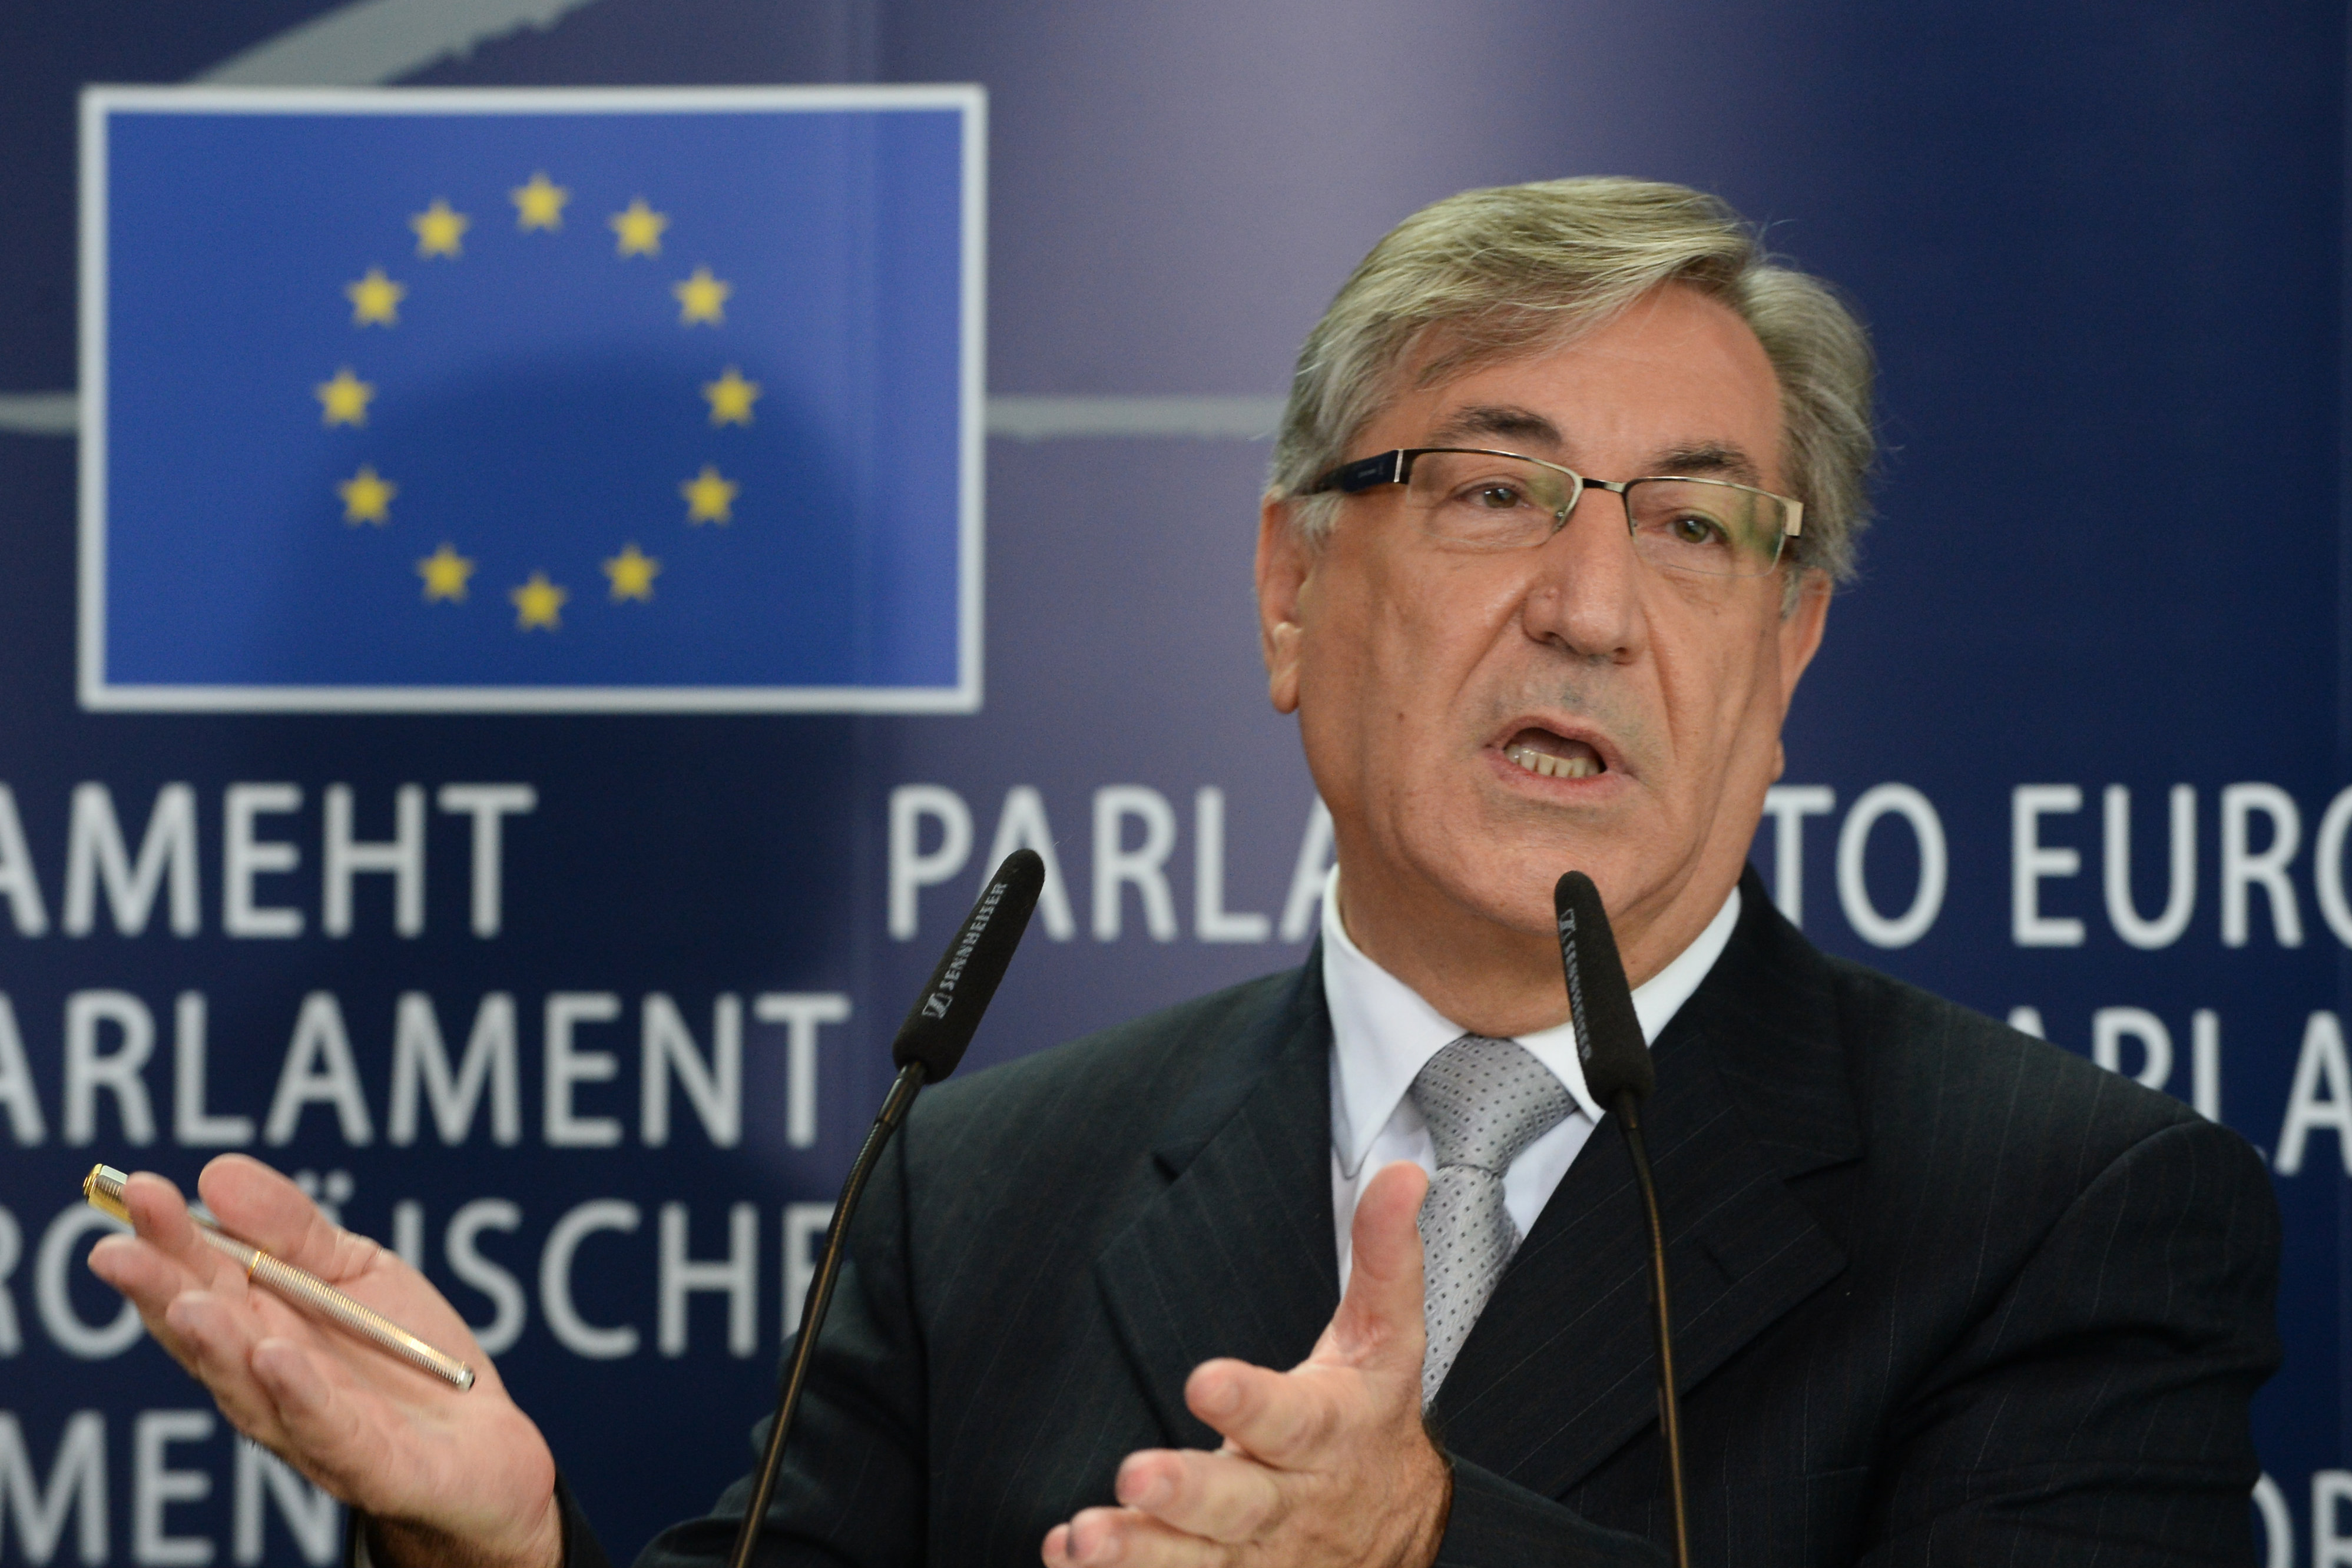 Environment Commissioner Karmenu Vella from Malta, already faces much criticism for his background in tourism, lack of experience and much more. [EC}